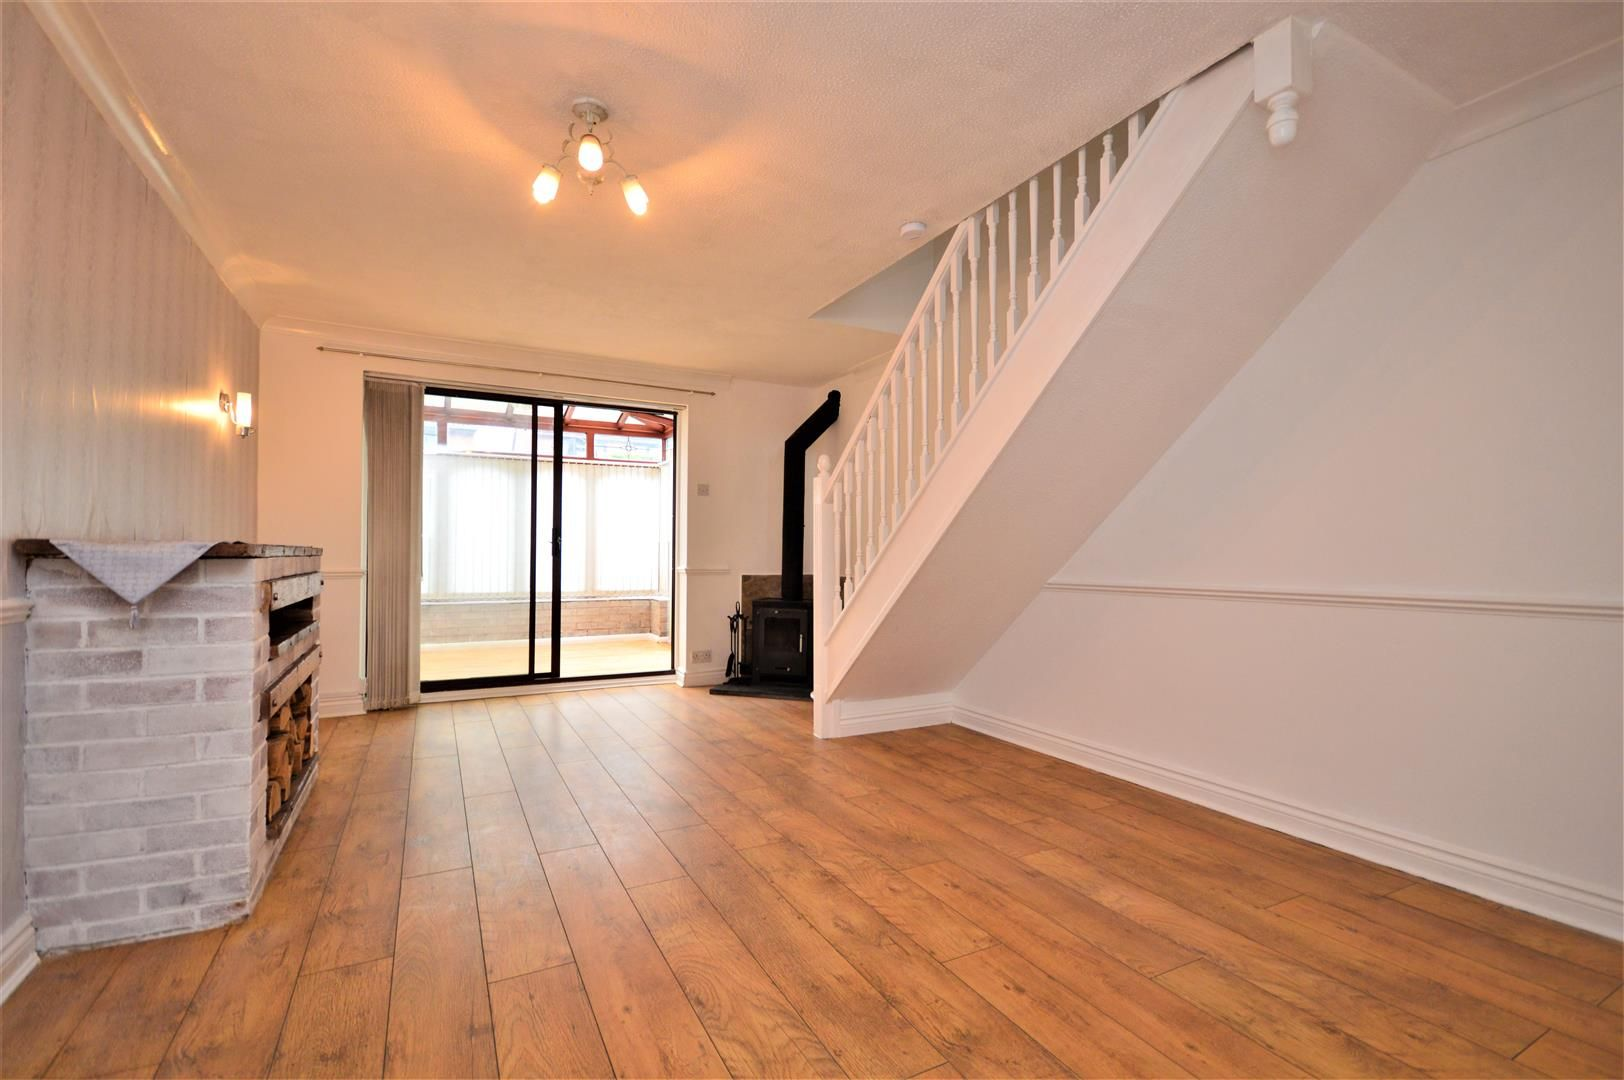 2 bed end-of-terrace for sale in Belmont 4